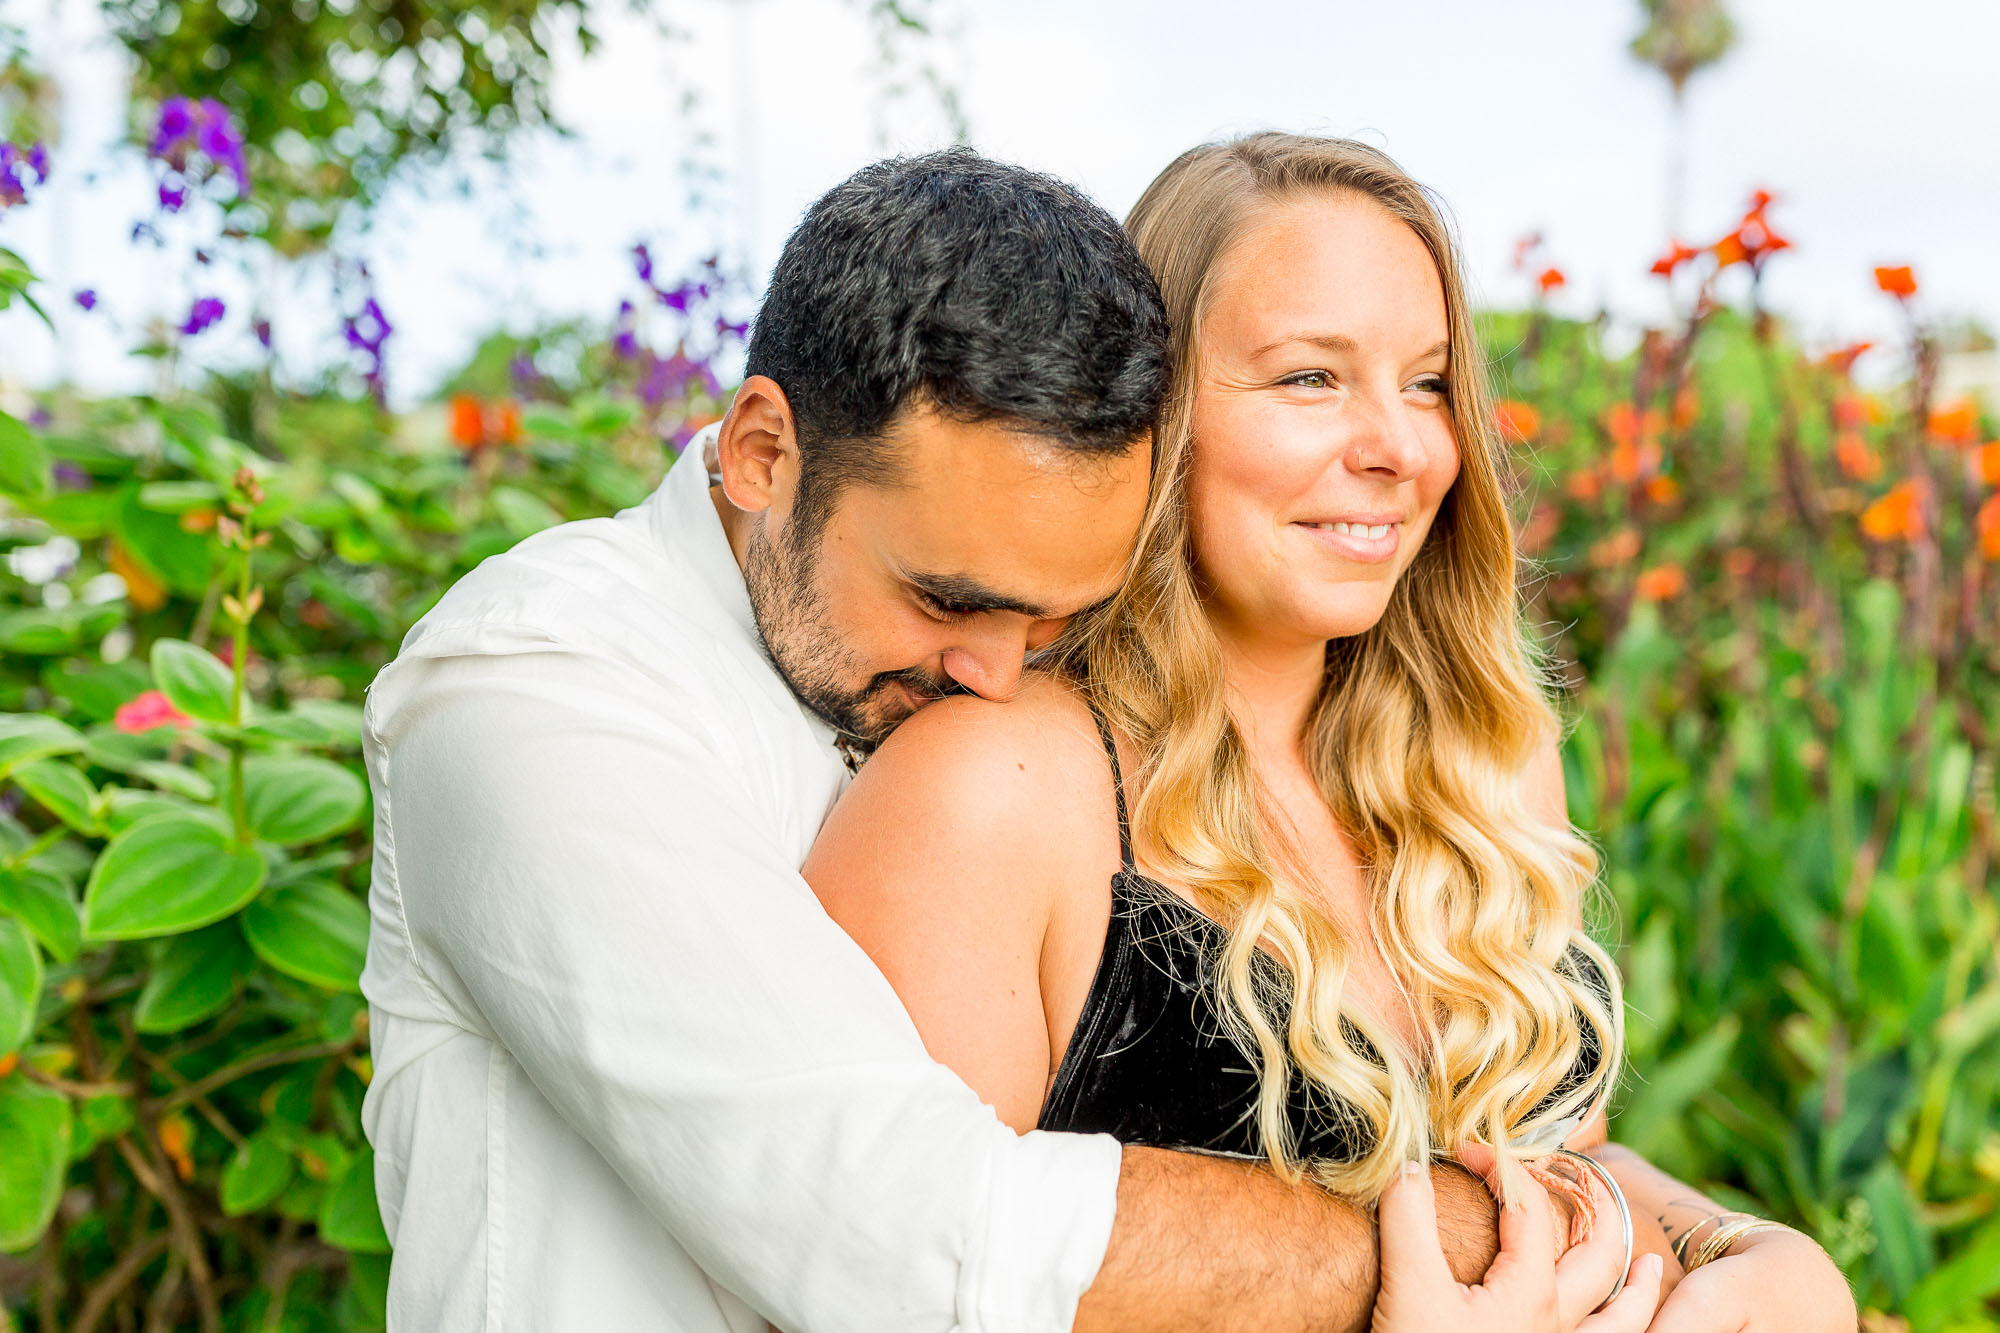 Justine_Puneet_Cardiff_Engagement_Session_029.jpg